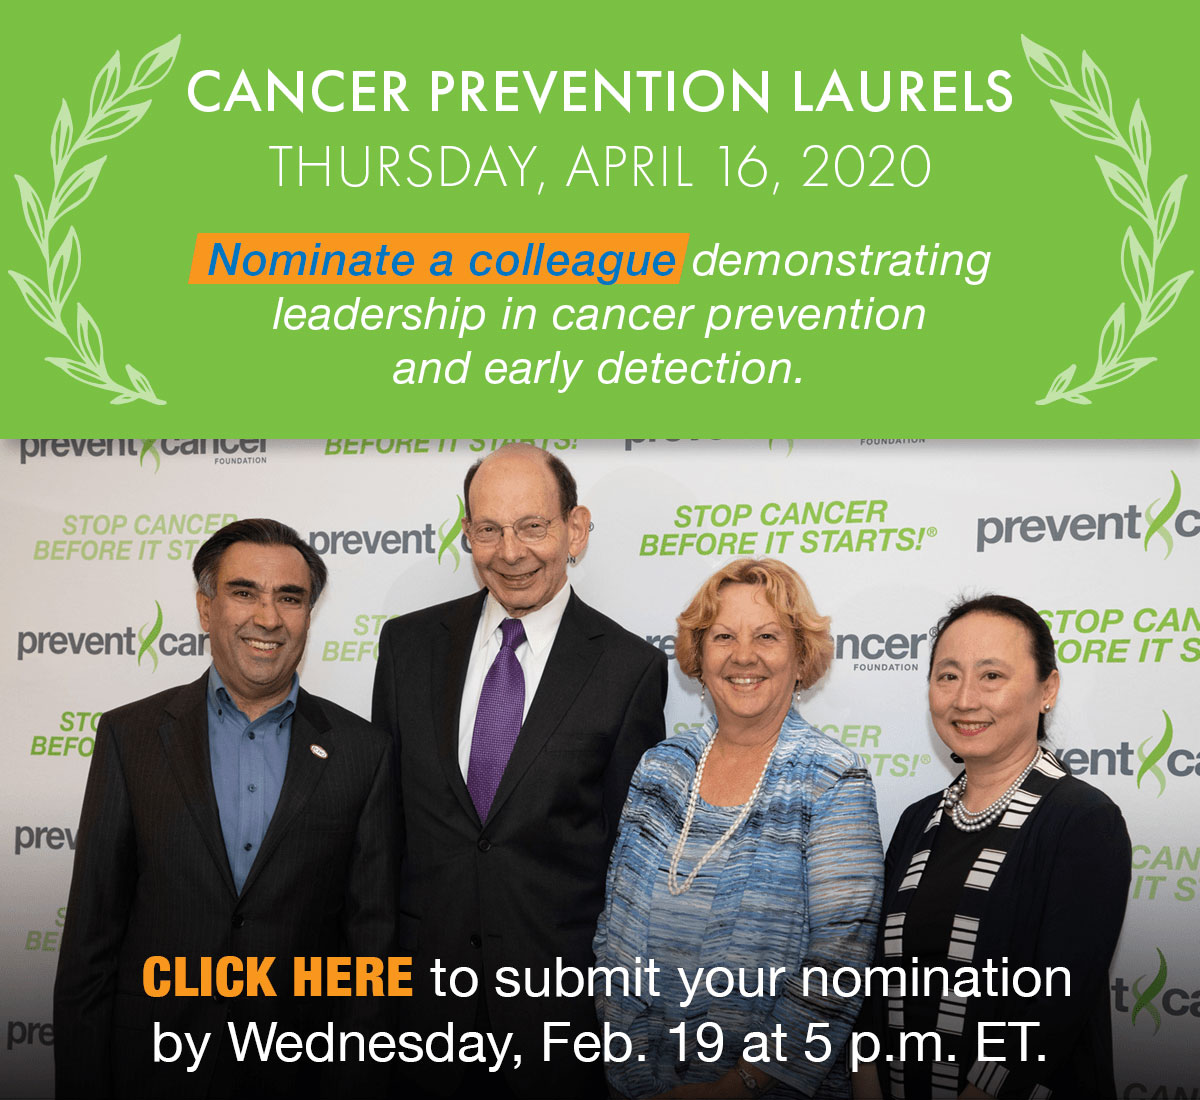 Cancer Prevention Laurels - Nominate a colleague